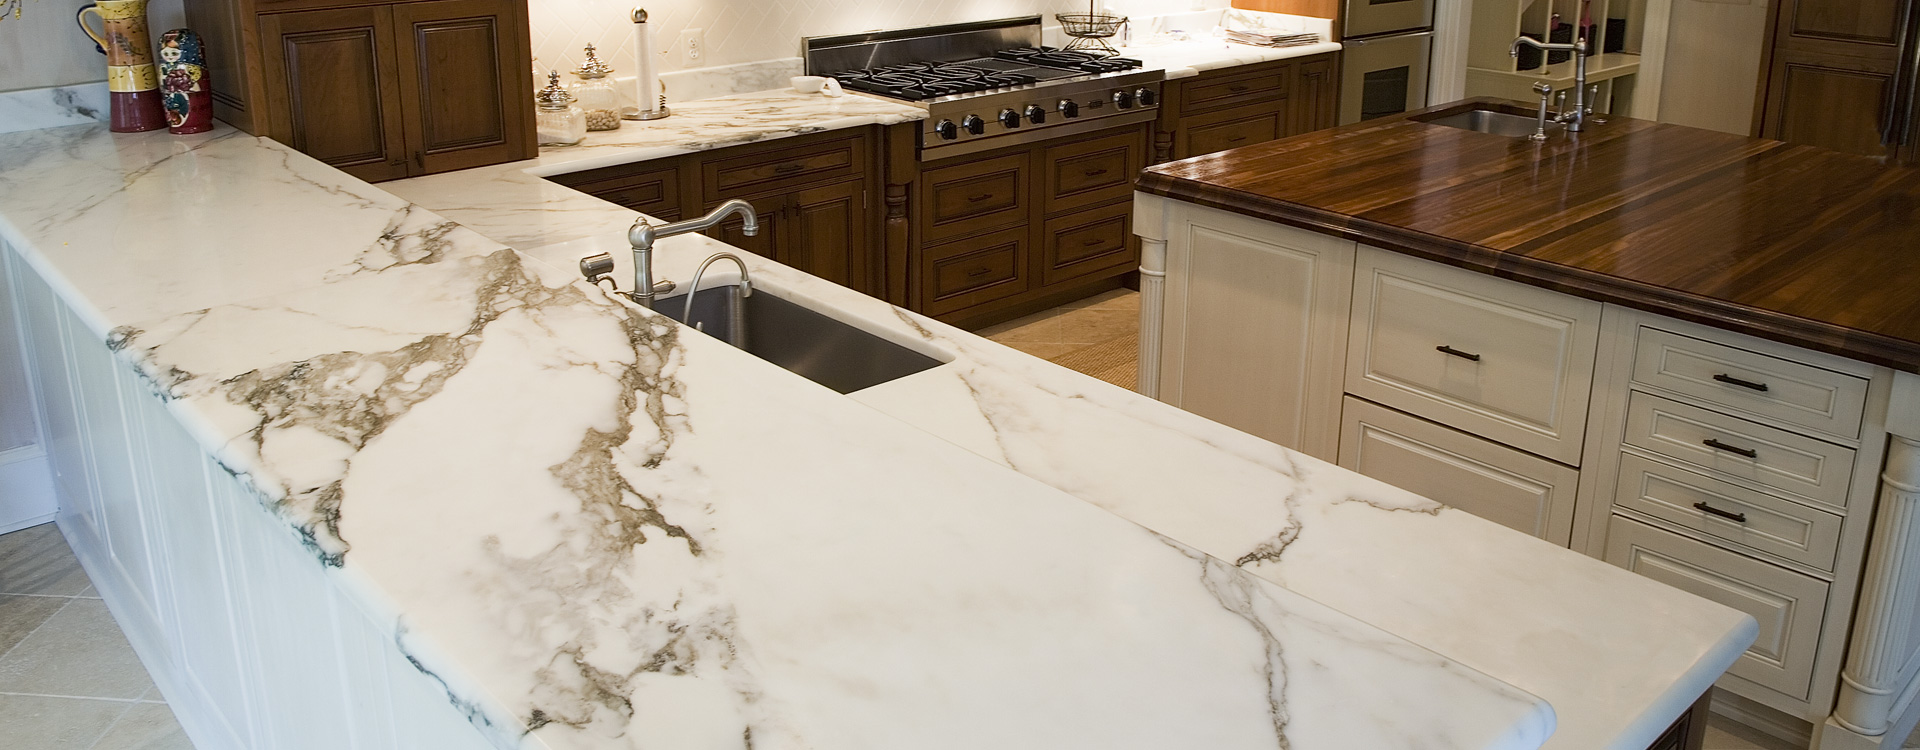 calcatta gold marble countrtop